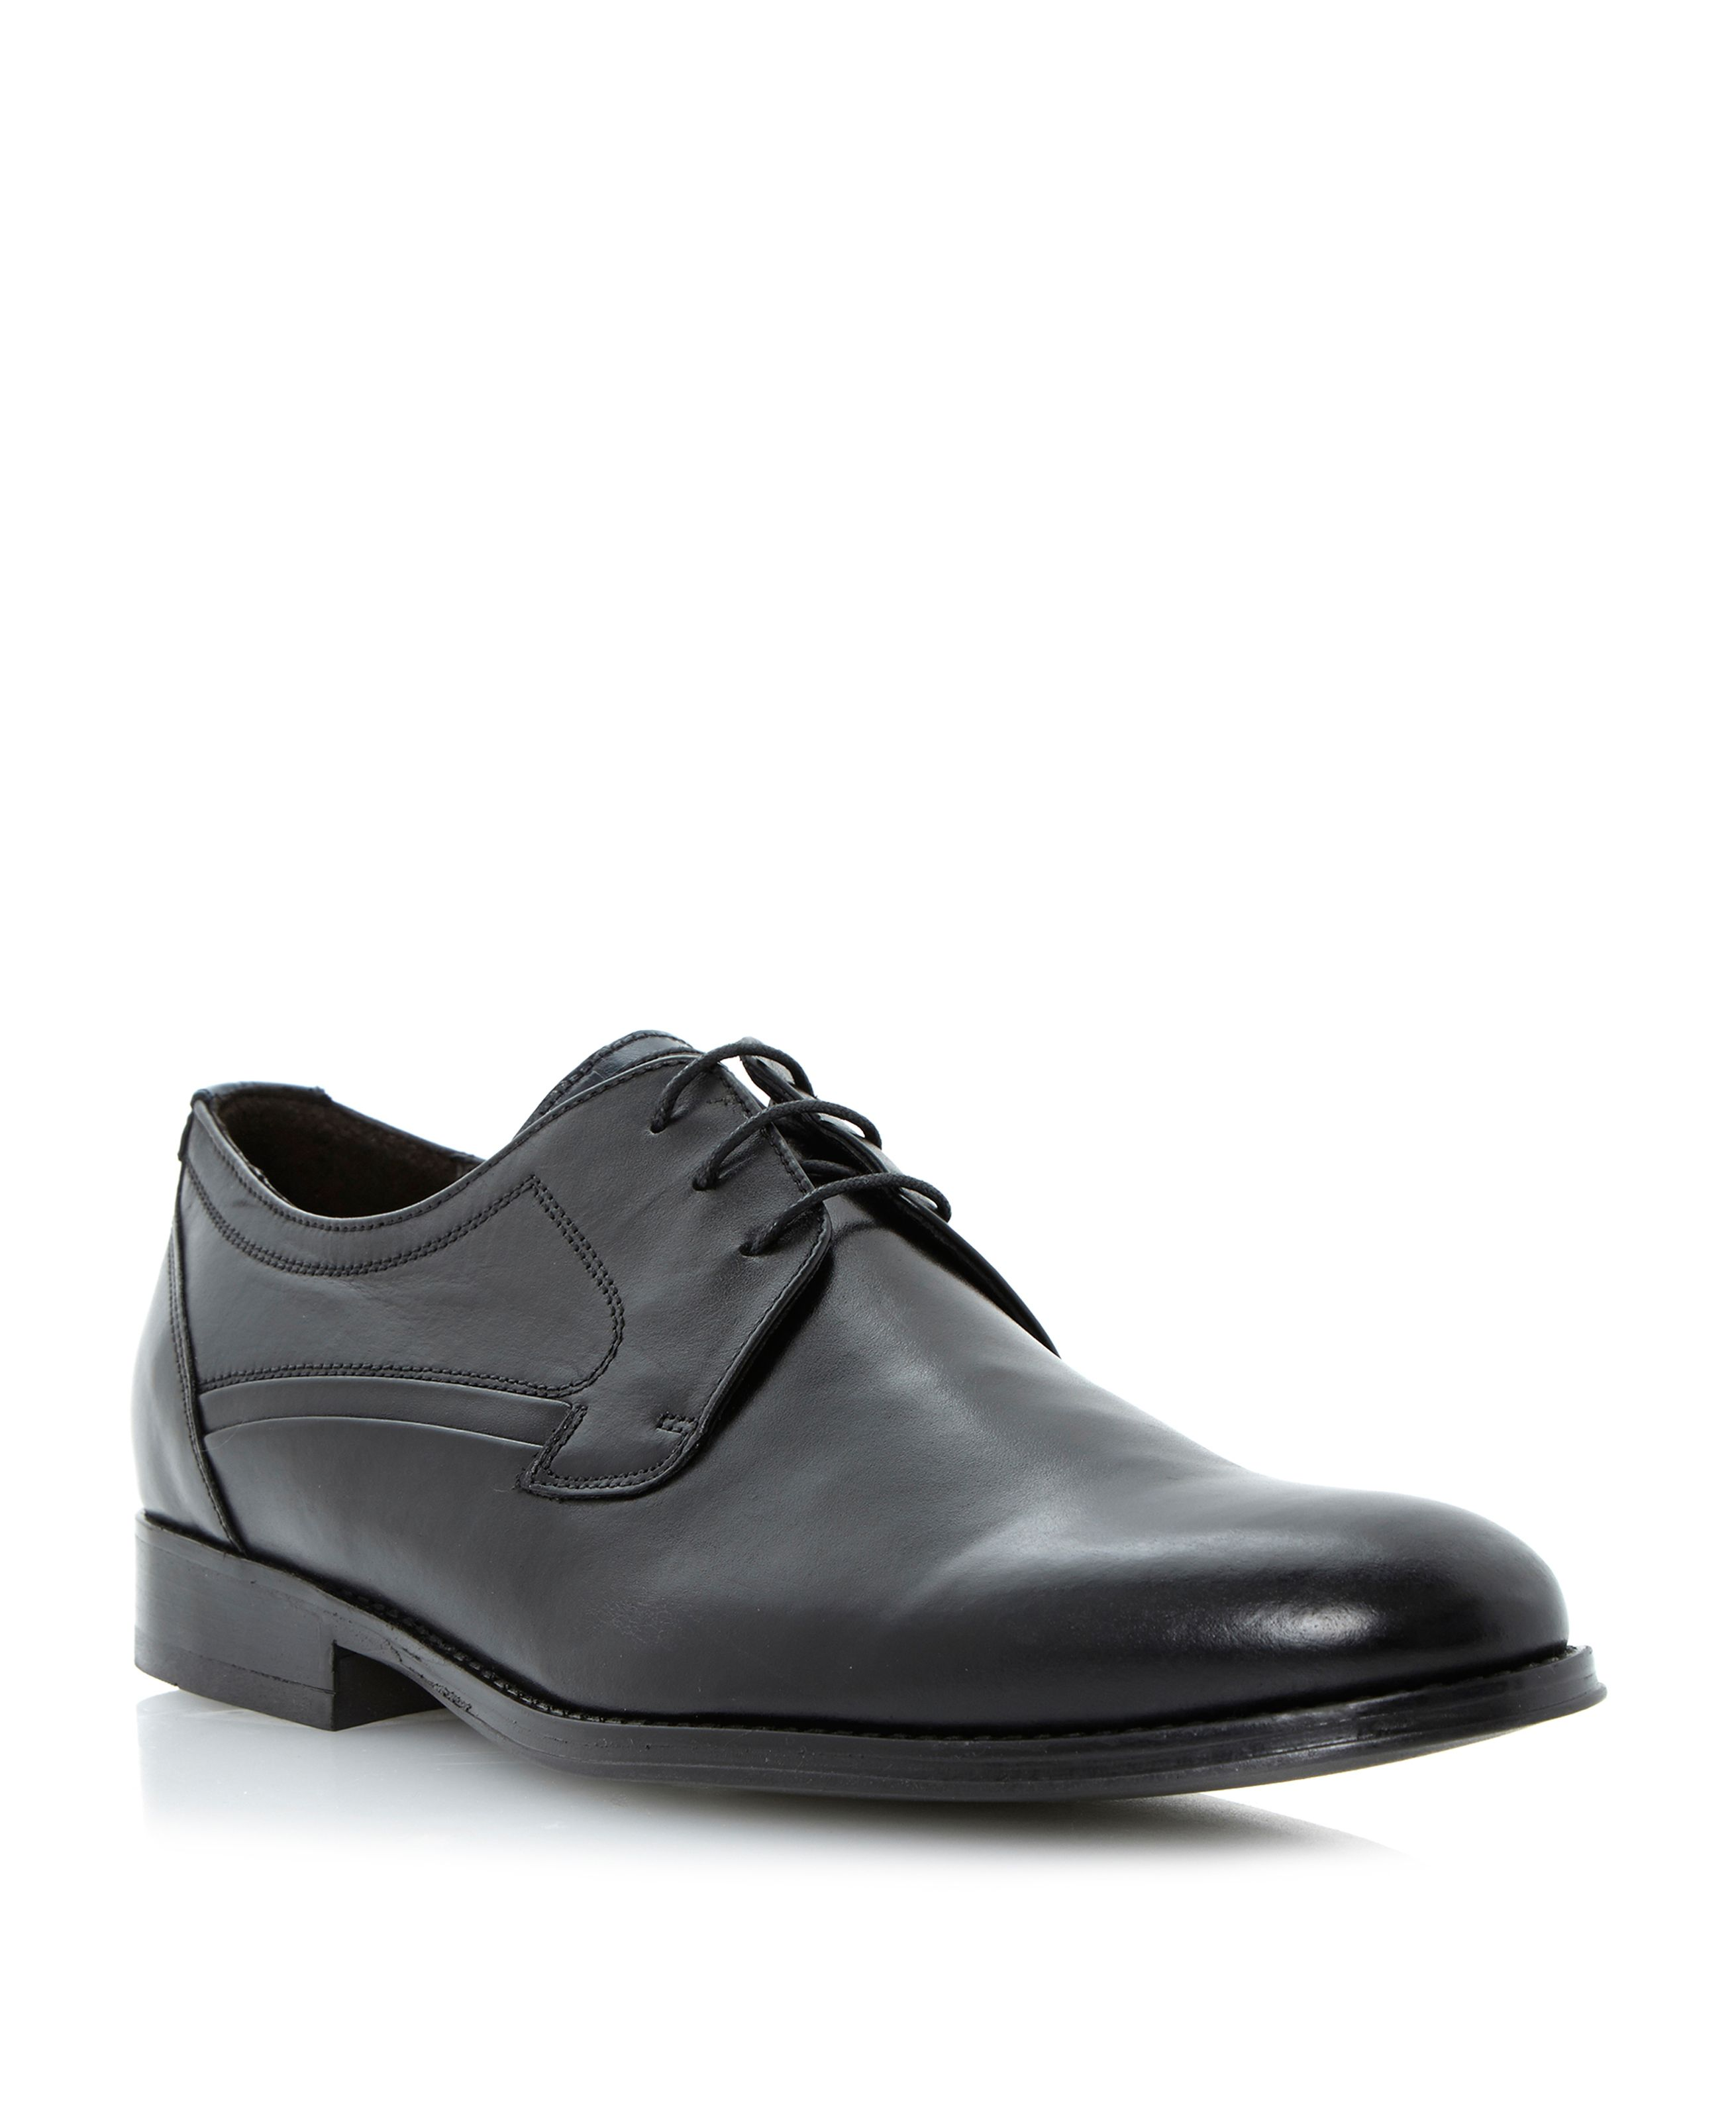 Robinson plain almond toe lace up shoes